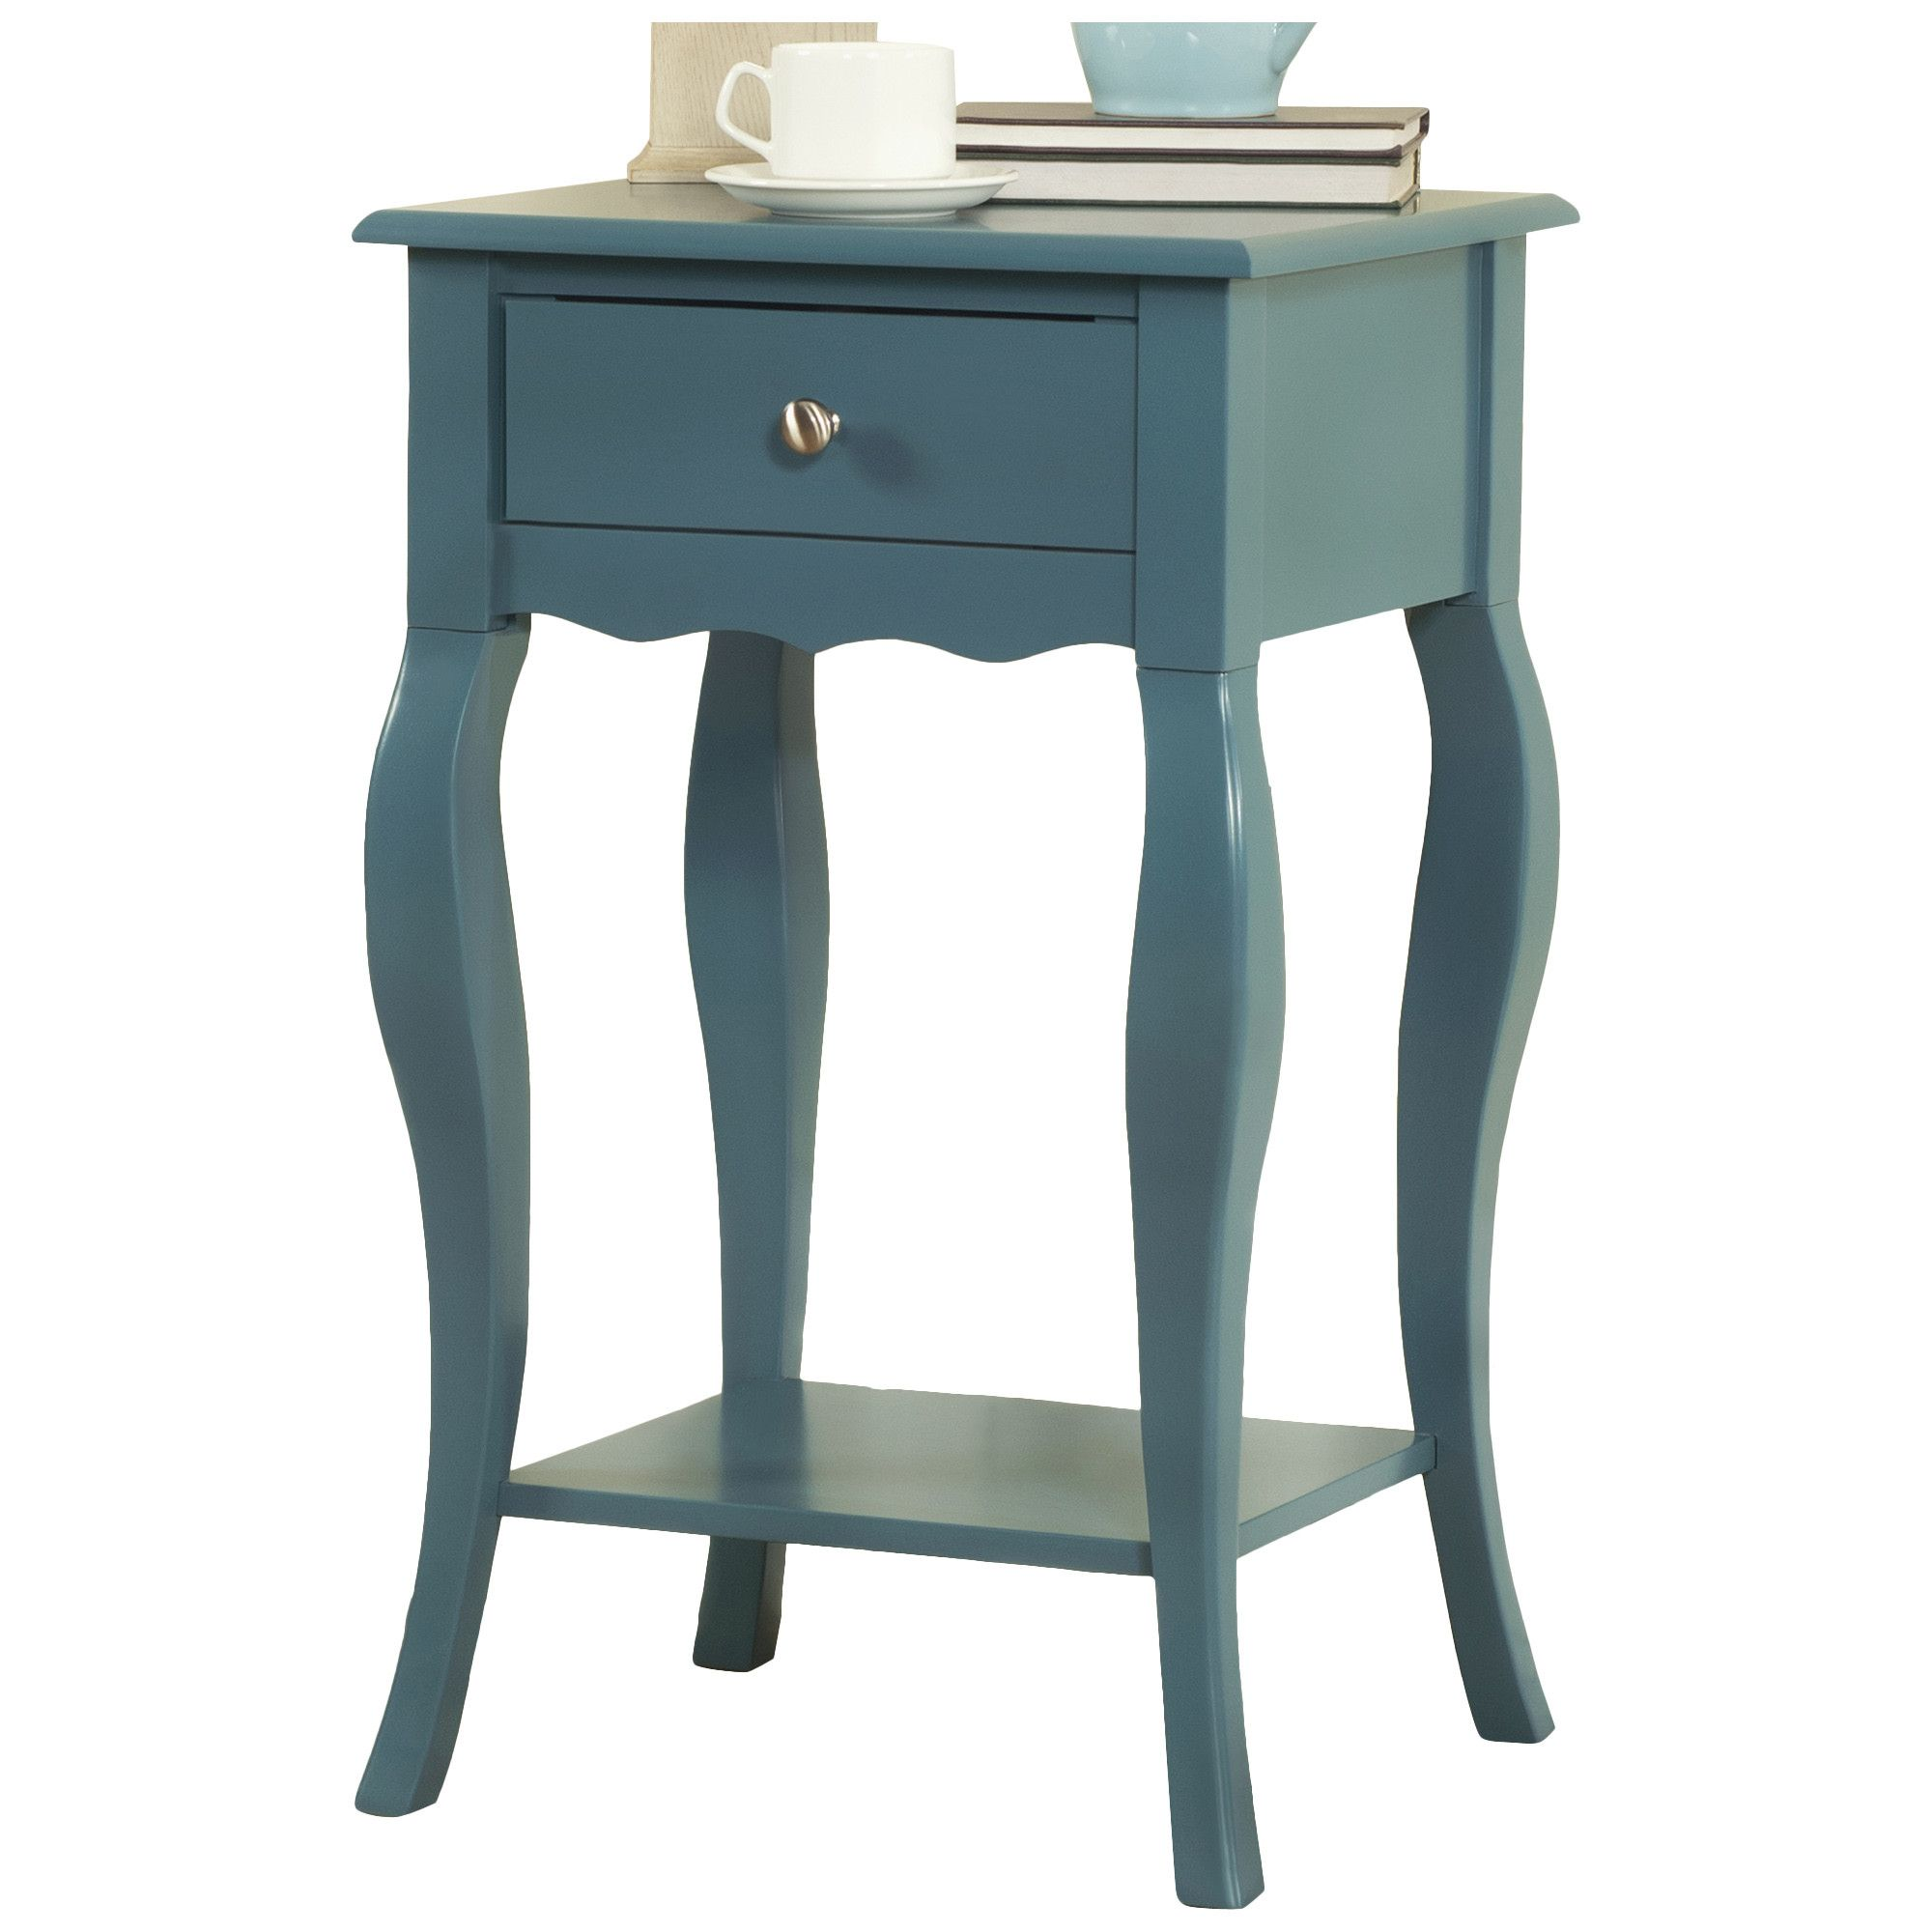 Kingstown Home Decatur 1 Drawer End Table & Reviews